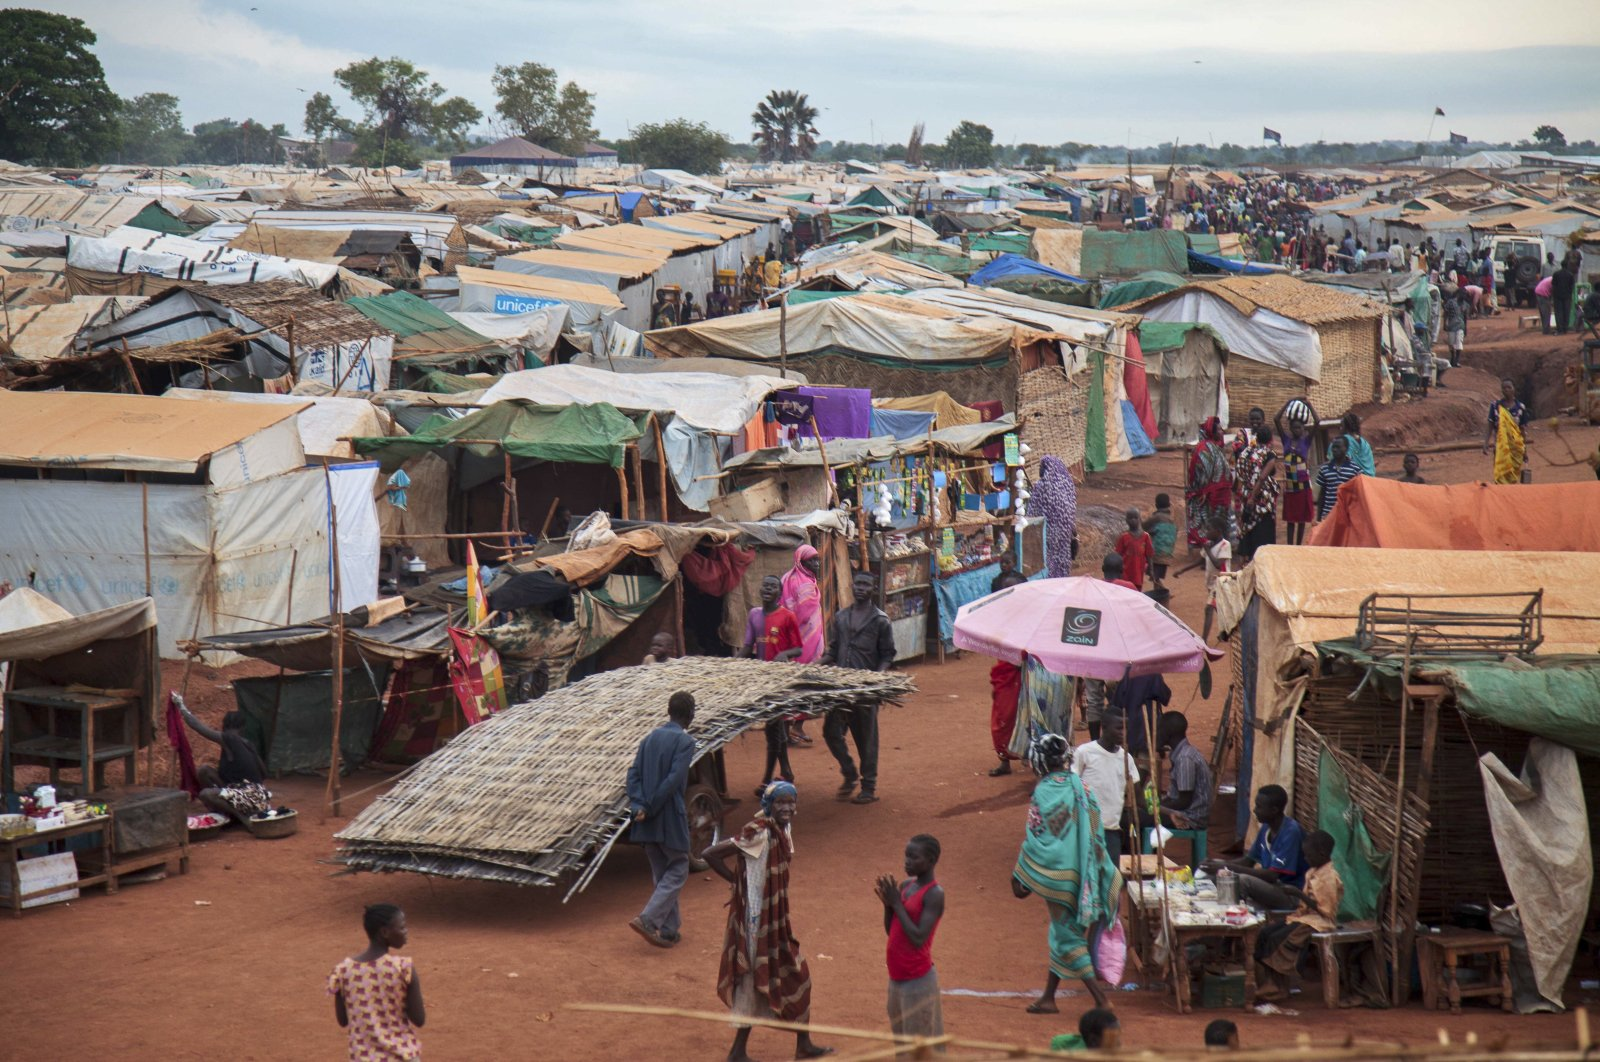 This Sunday, May 14, 2017 file photo shows the U.N. Protection of Civilians camp in Wau, South Sudan. (AP Photo)